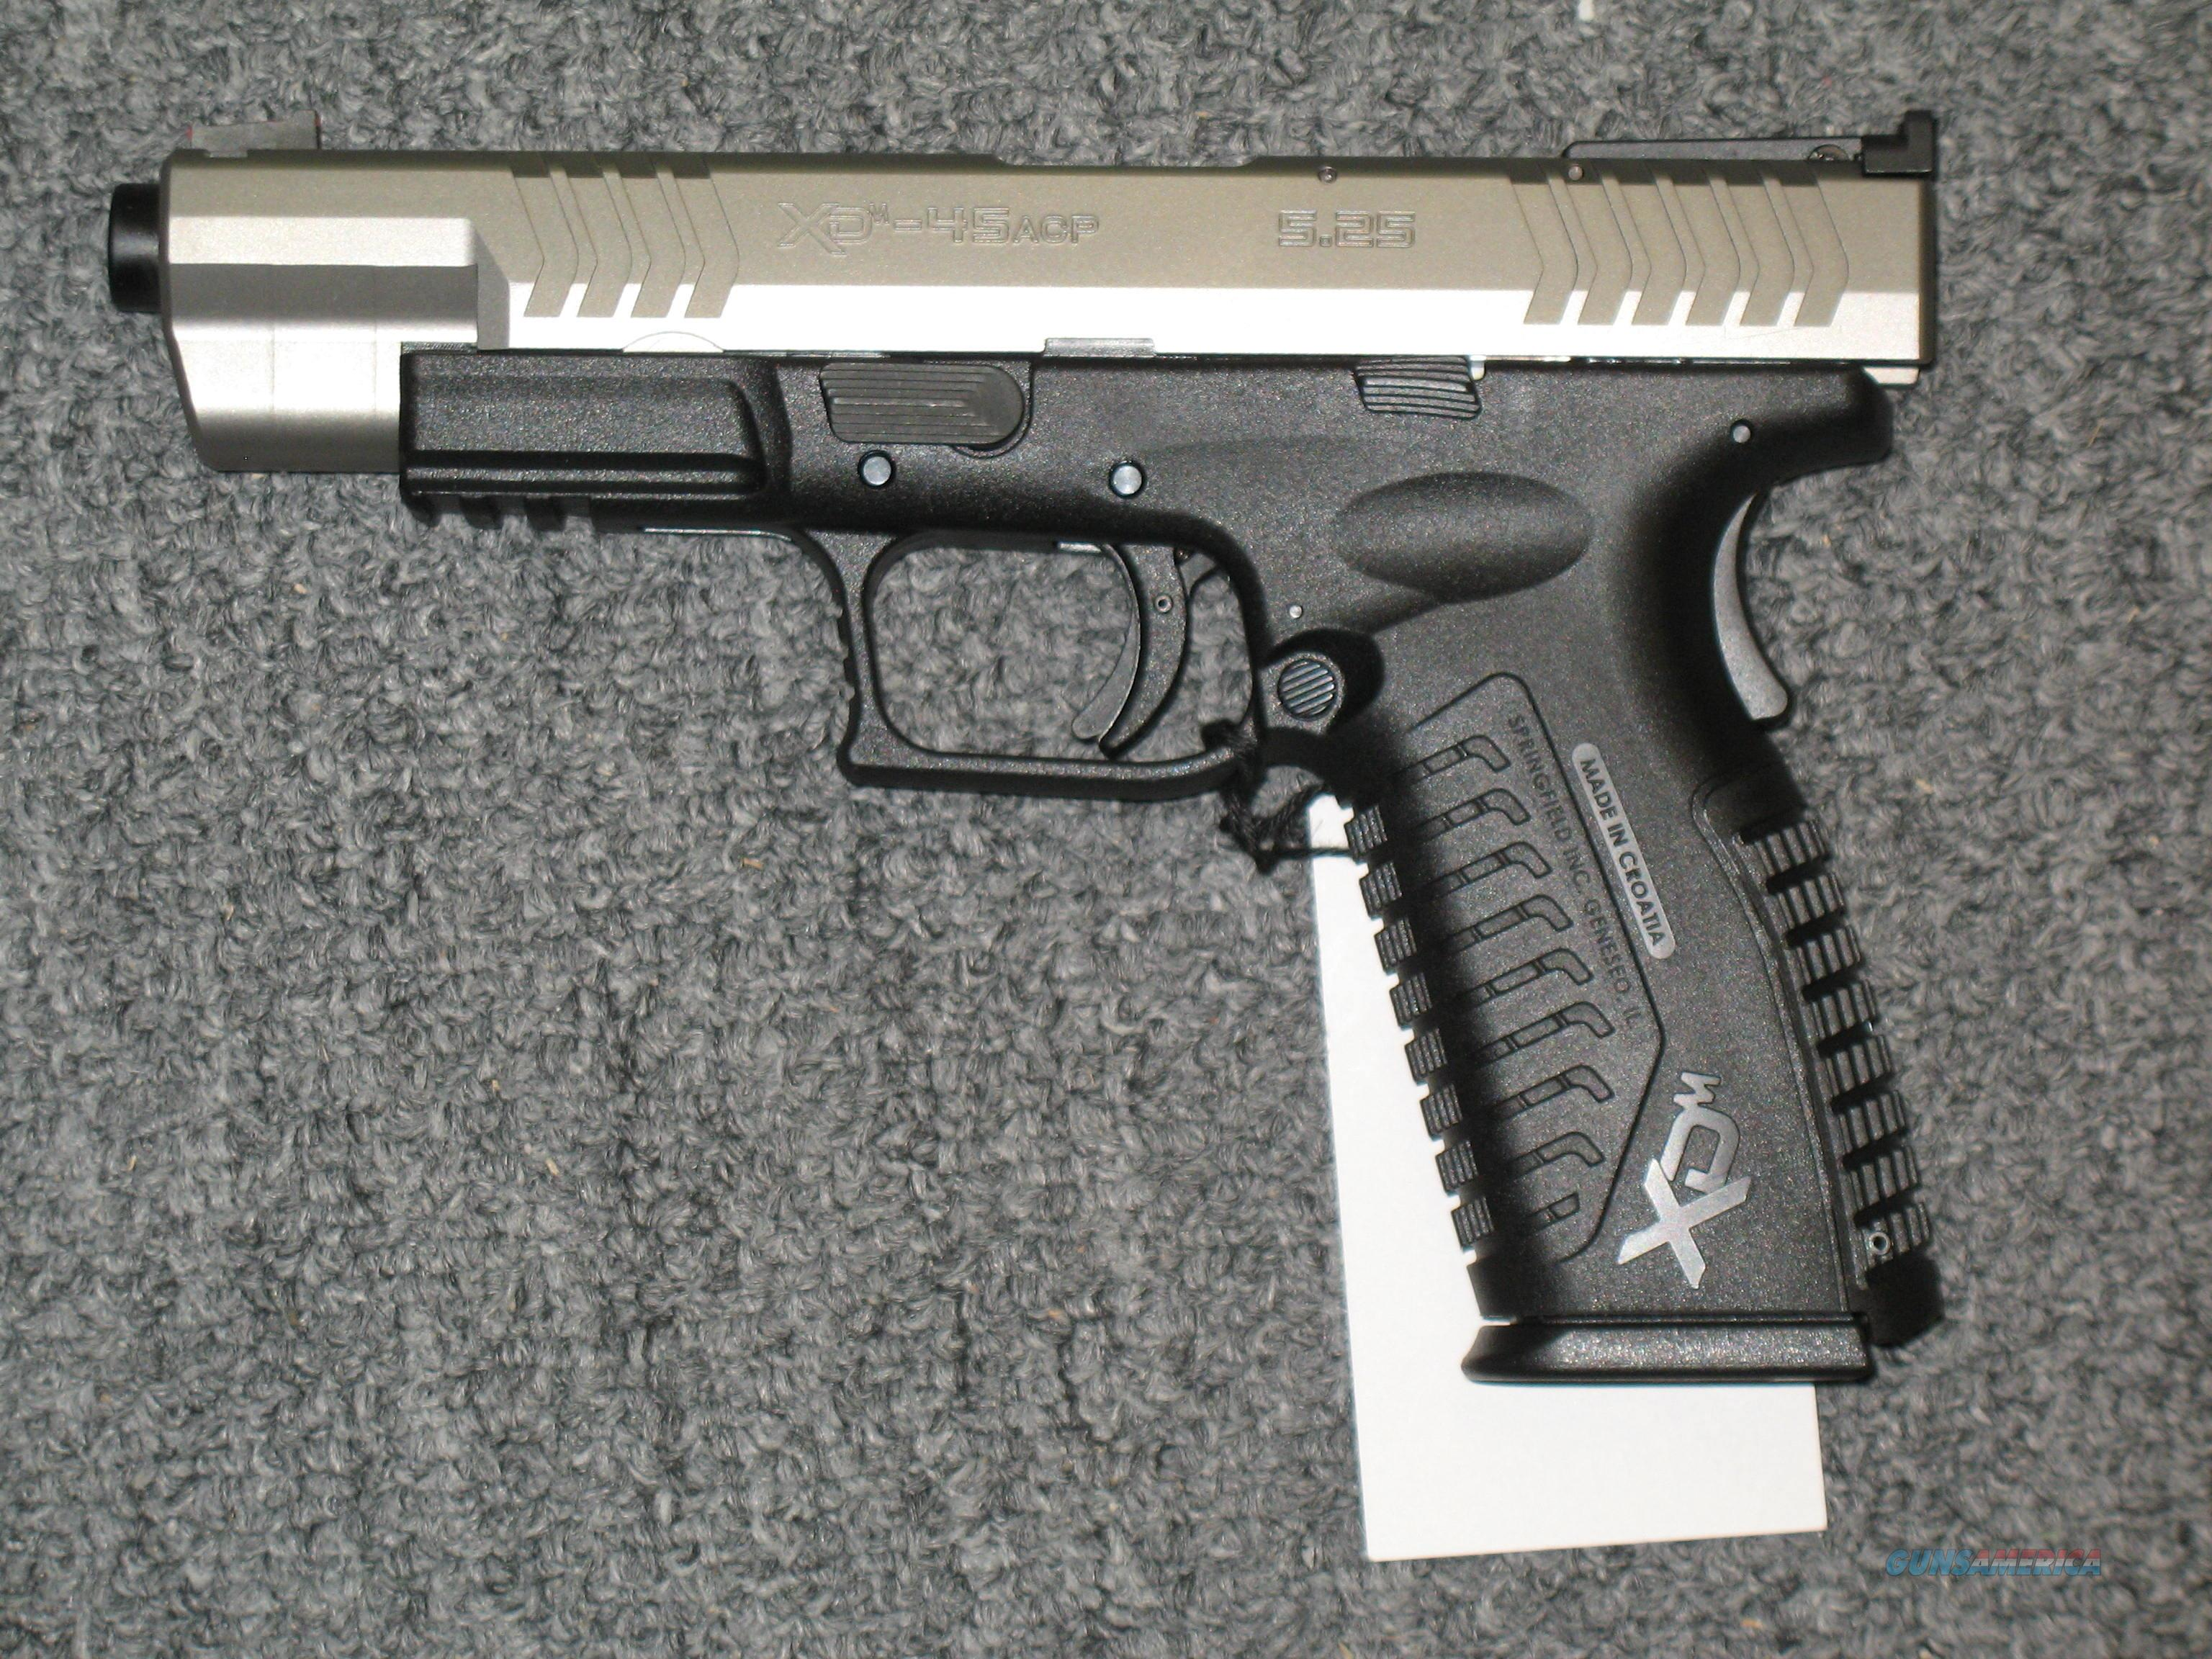 XDM-45  5.25 Competition Series (2 tone stainless)  Guns > Pistols > Springfield Armory Pistols > XD-M